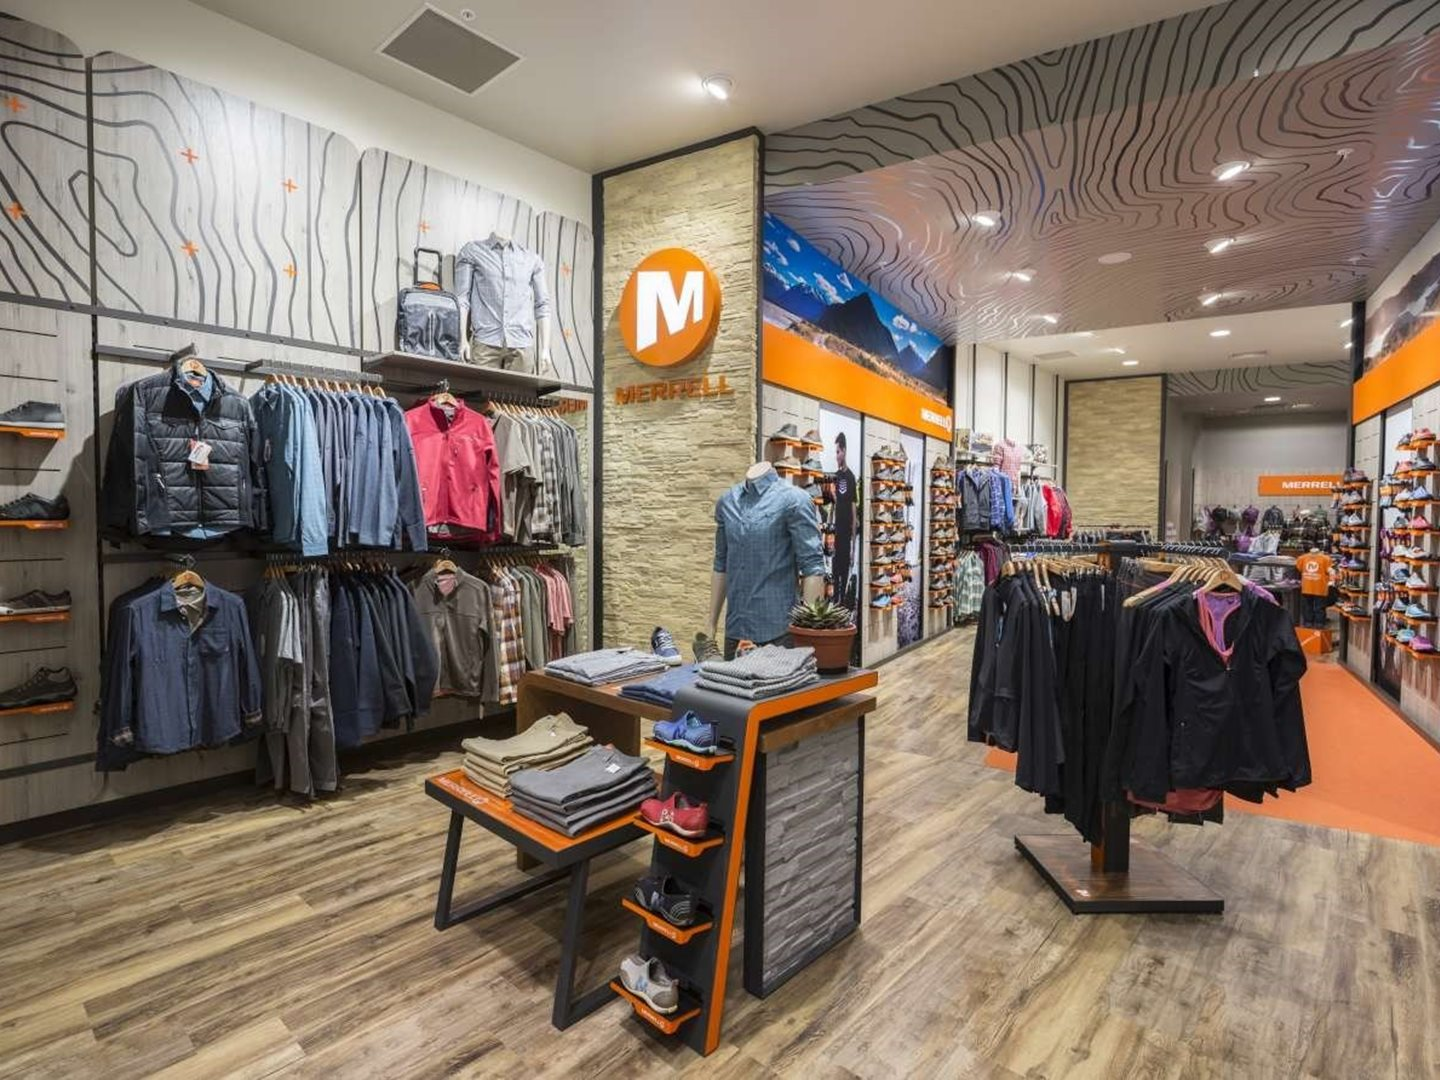 Merrell Retail Fit out